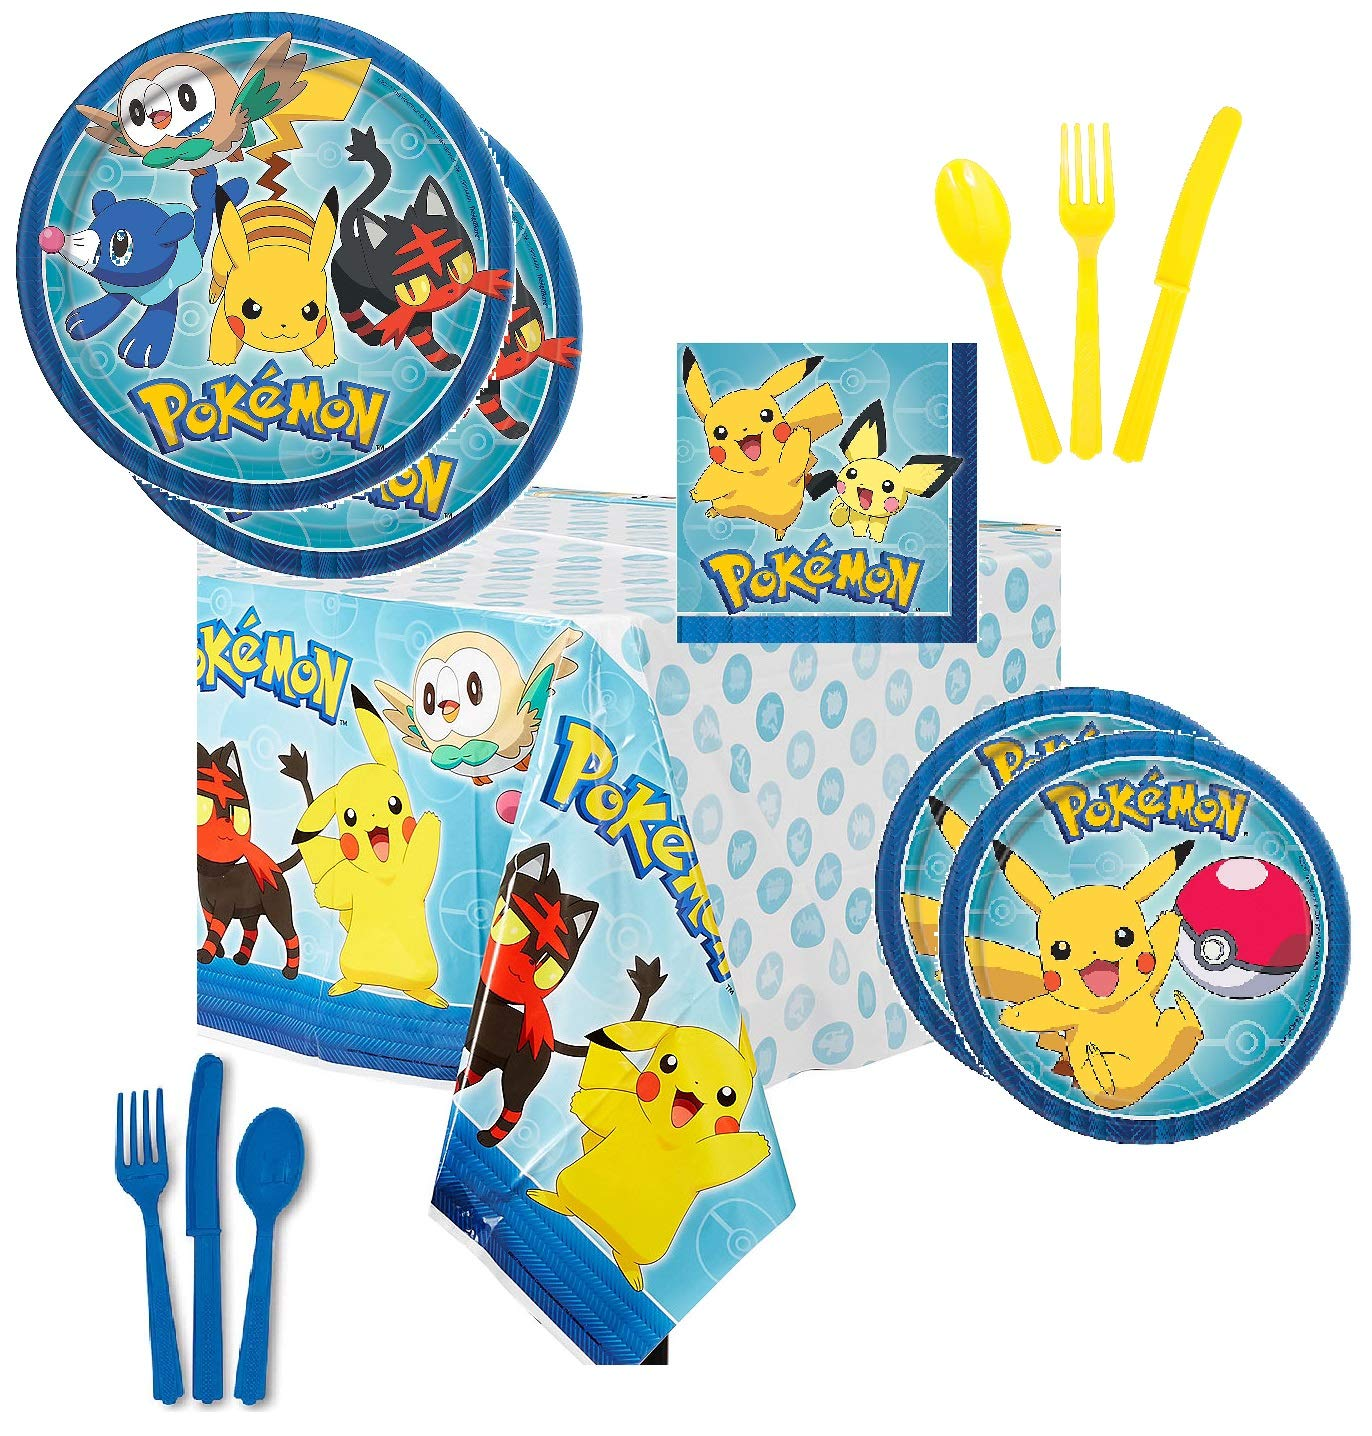 Pokémon Party Supplies Tableware Bundle Pack for 16 Guests - Includes 16 Dinner Plates, 16 Dessert Plates, 16 Dinner Napkins, 1 Tablecover, 8 each Blue and Yellow Knives Forks and Spoons